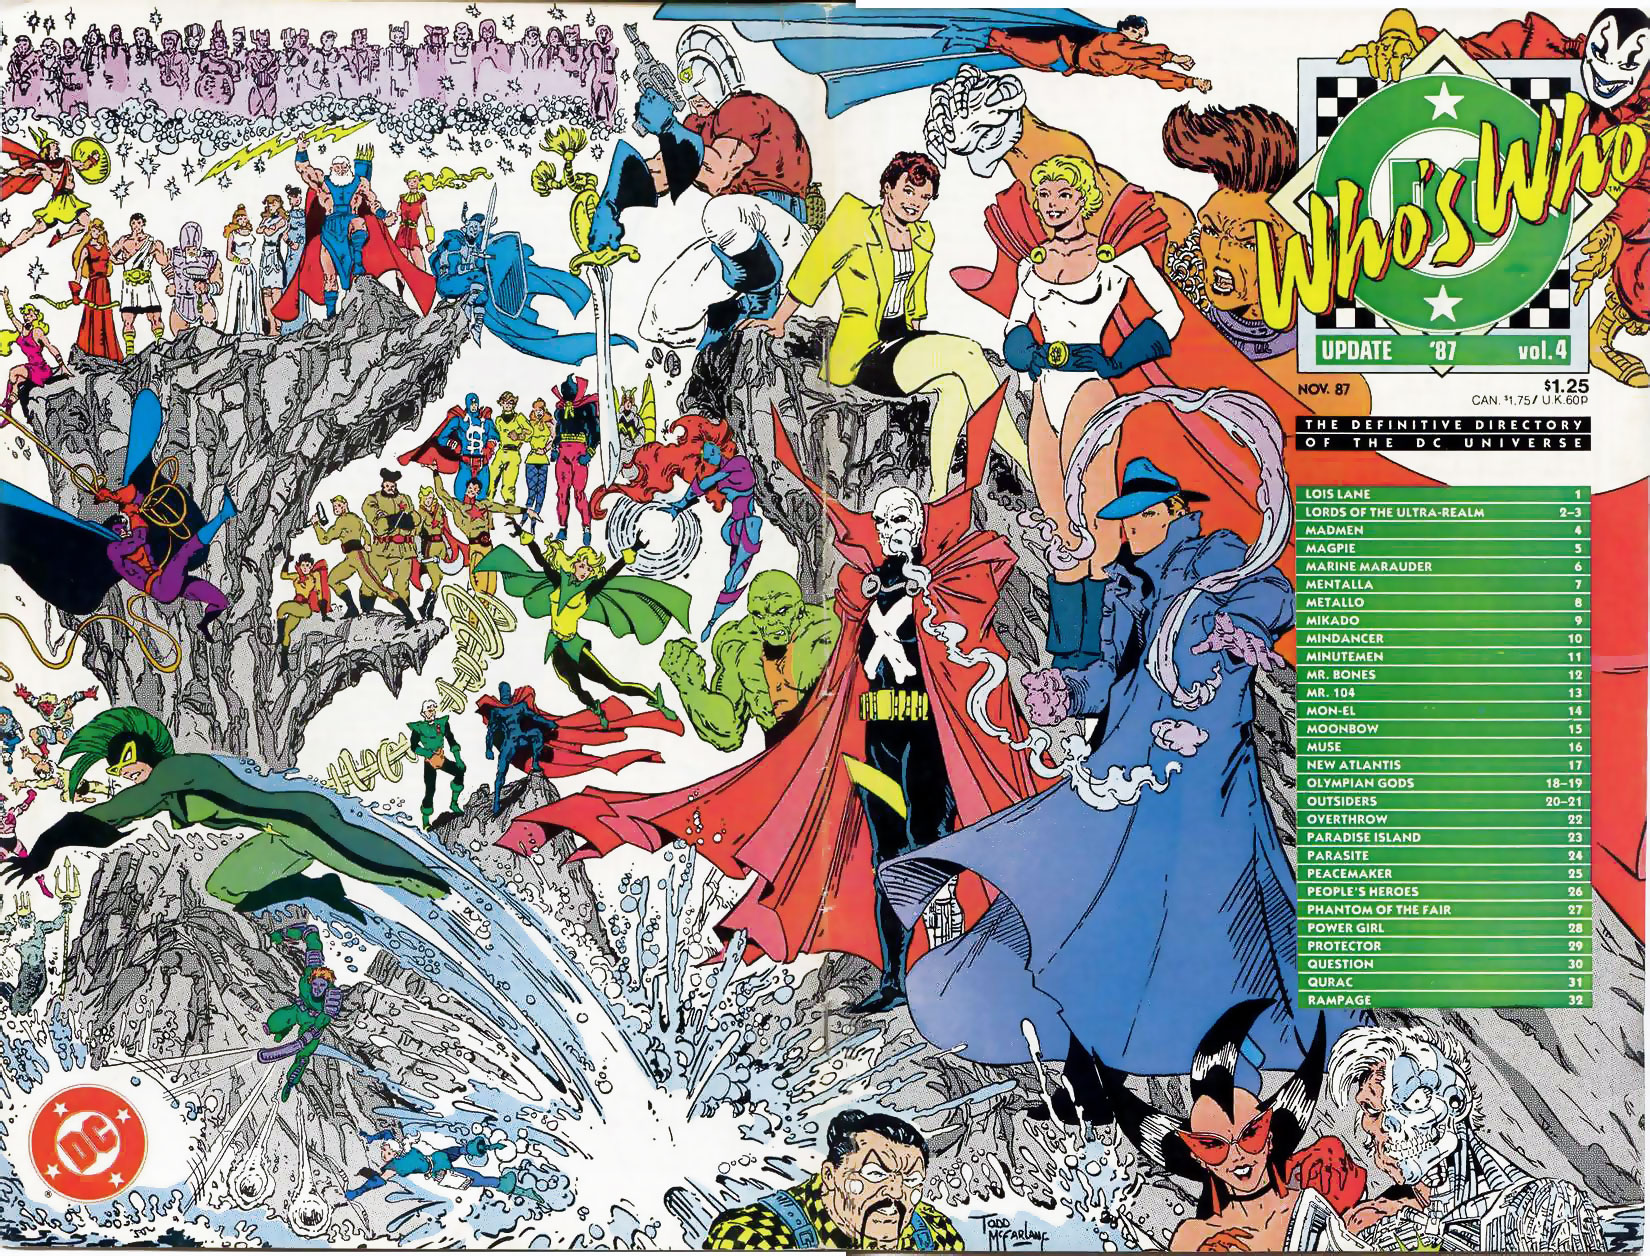 Who's Who Update '87 #4 cover by Todd McFarlane